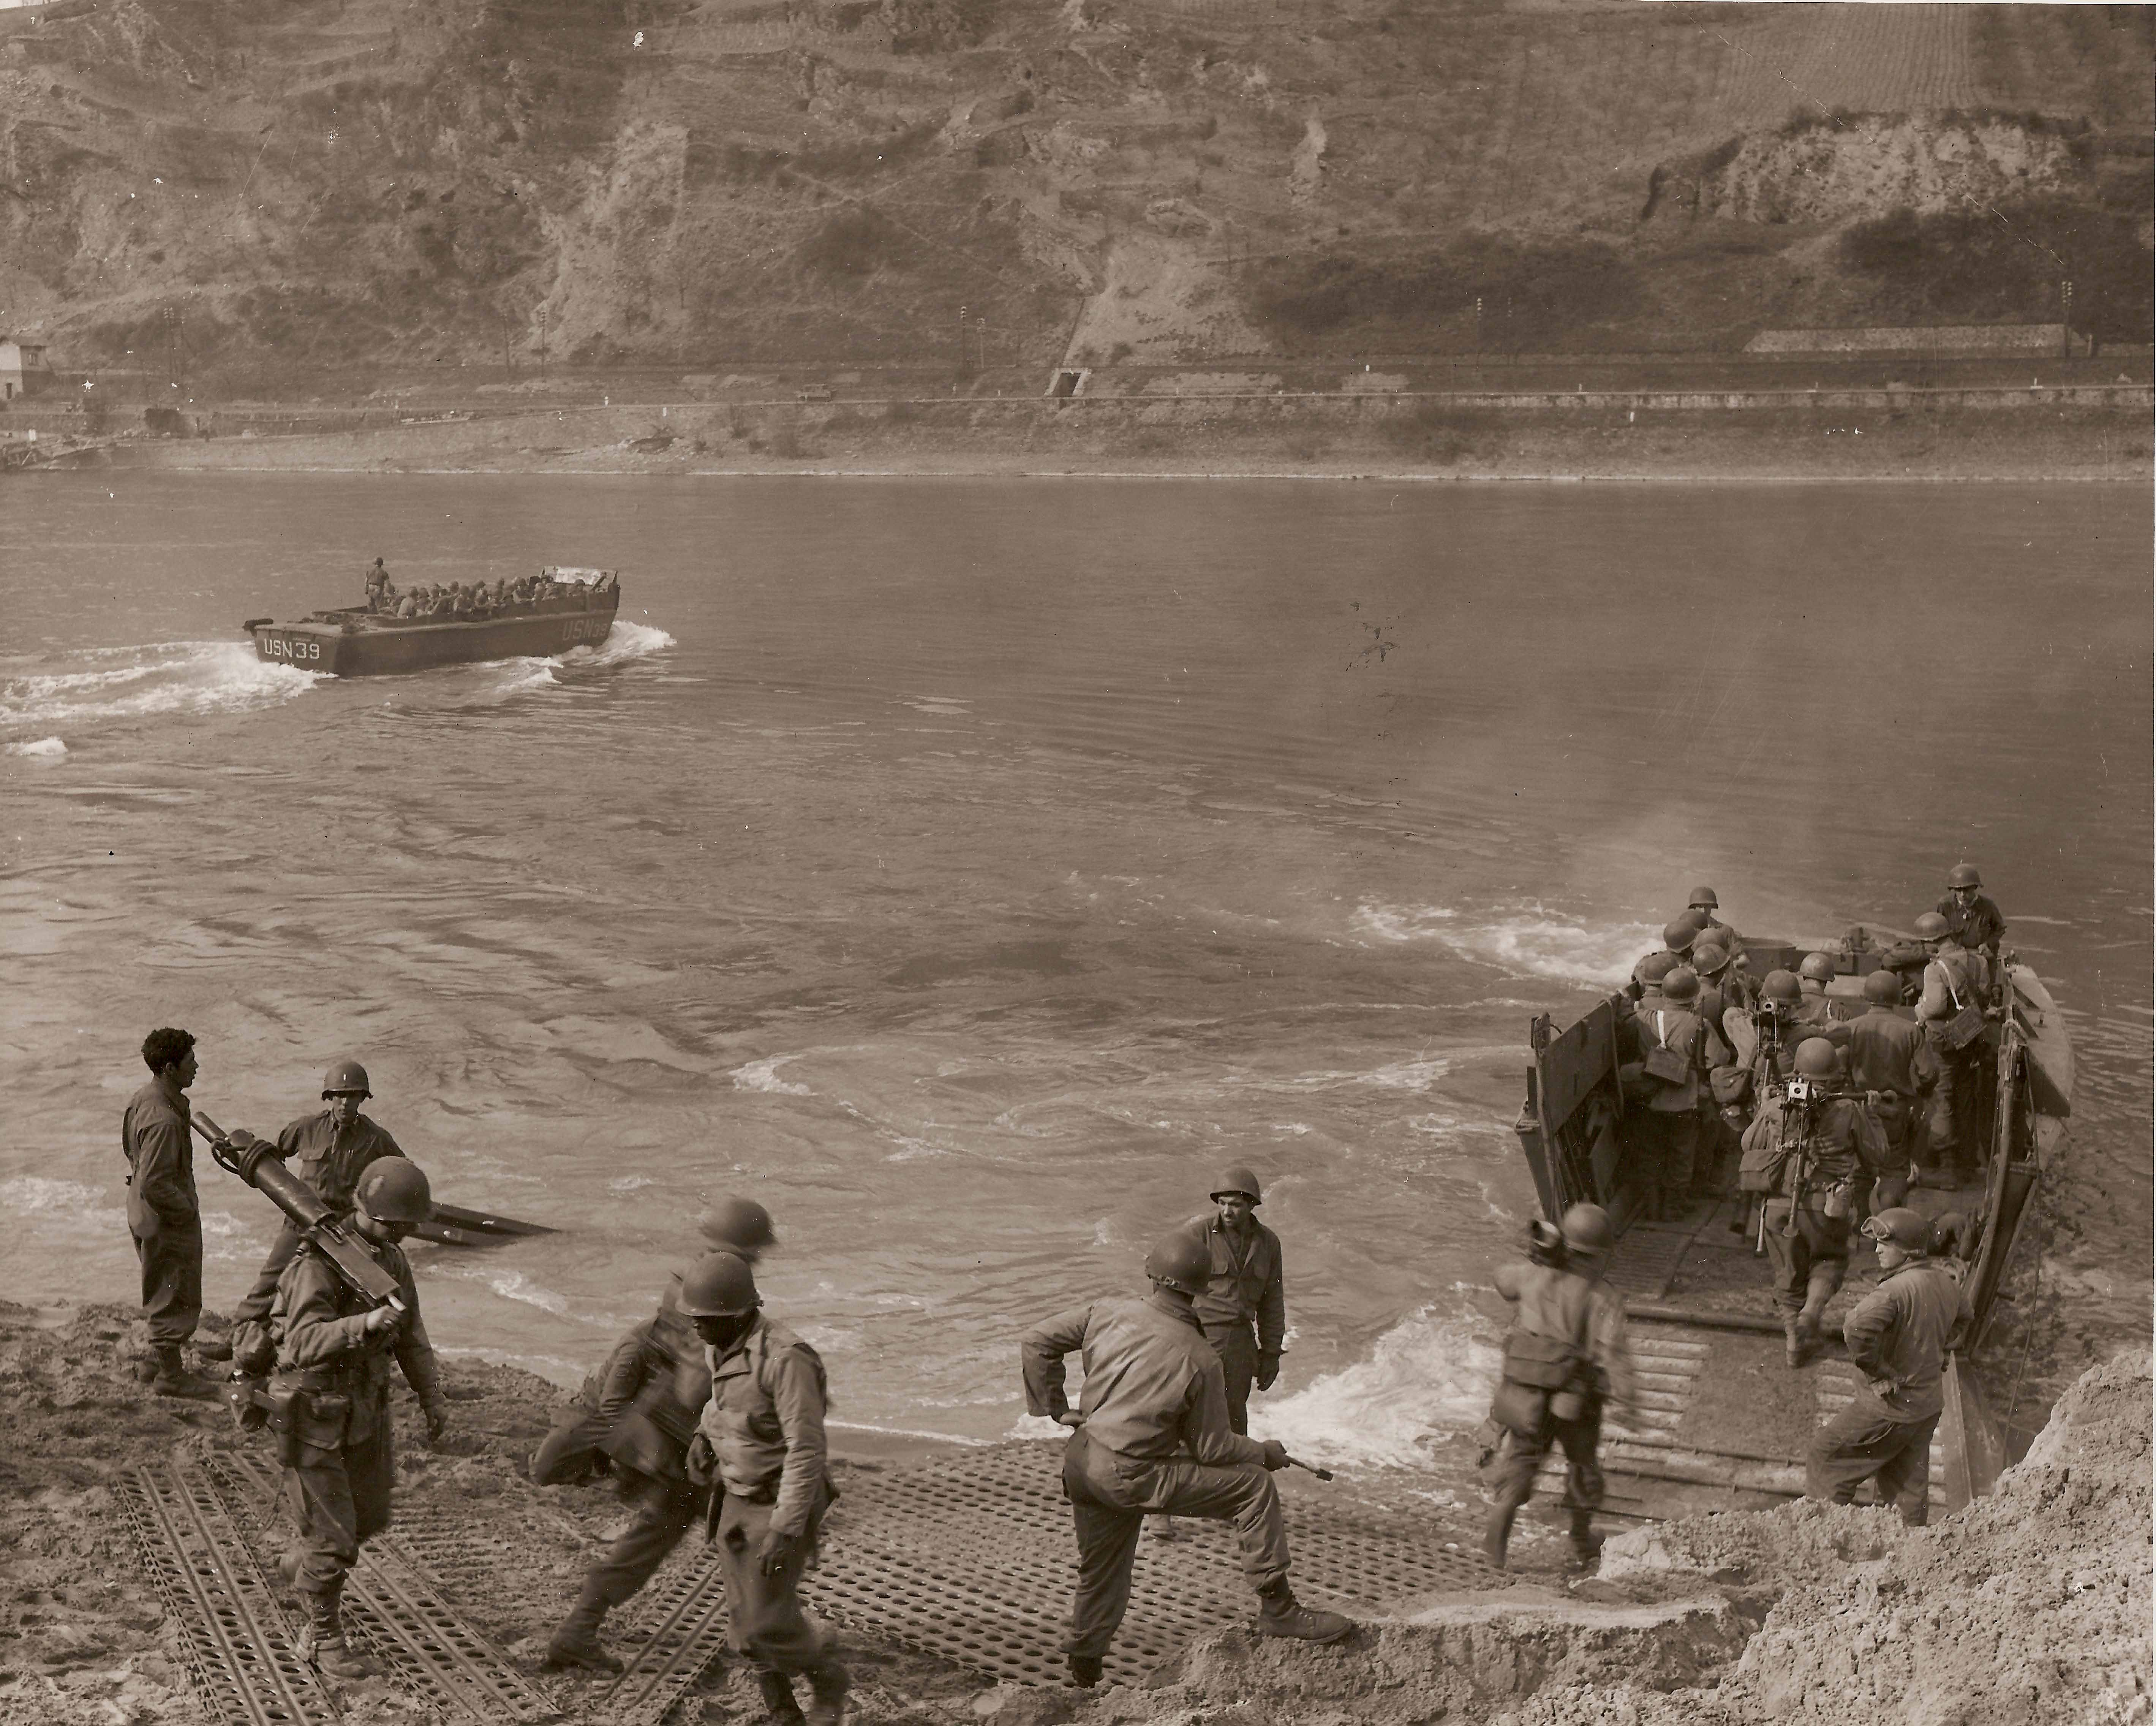 Seabees help Patton and Army cross the Rhine River.